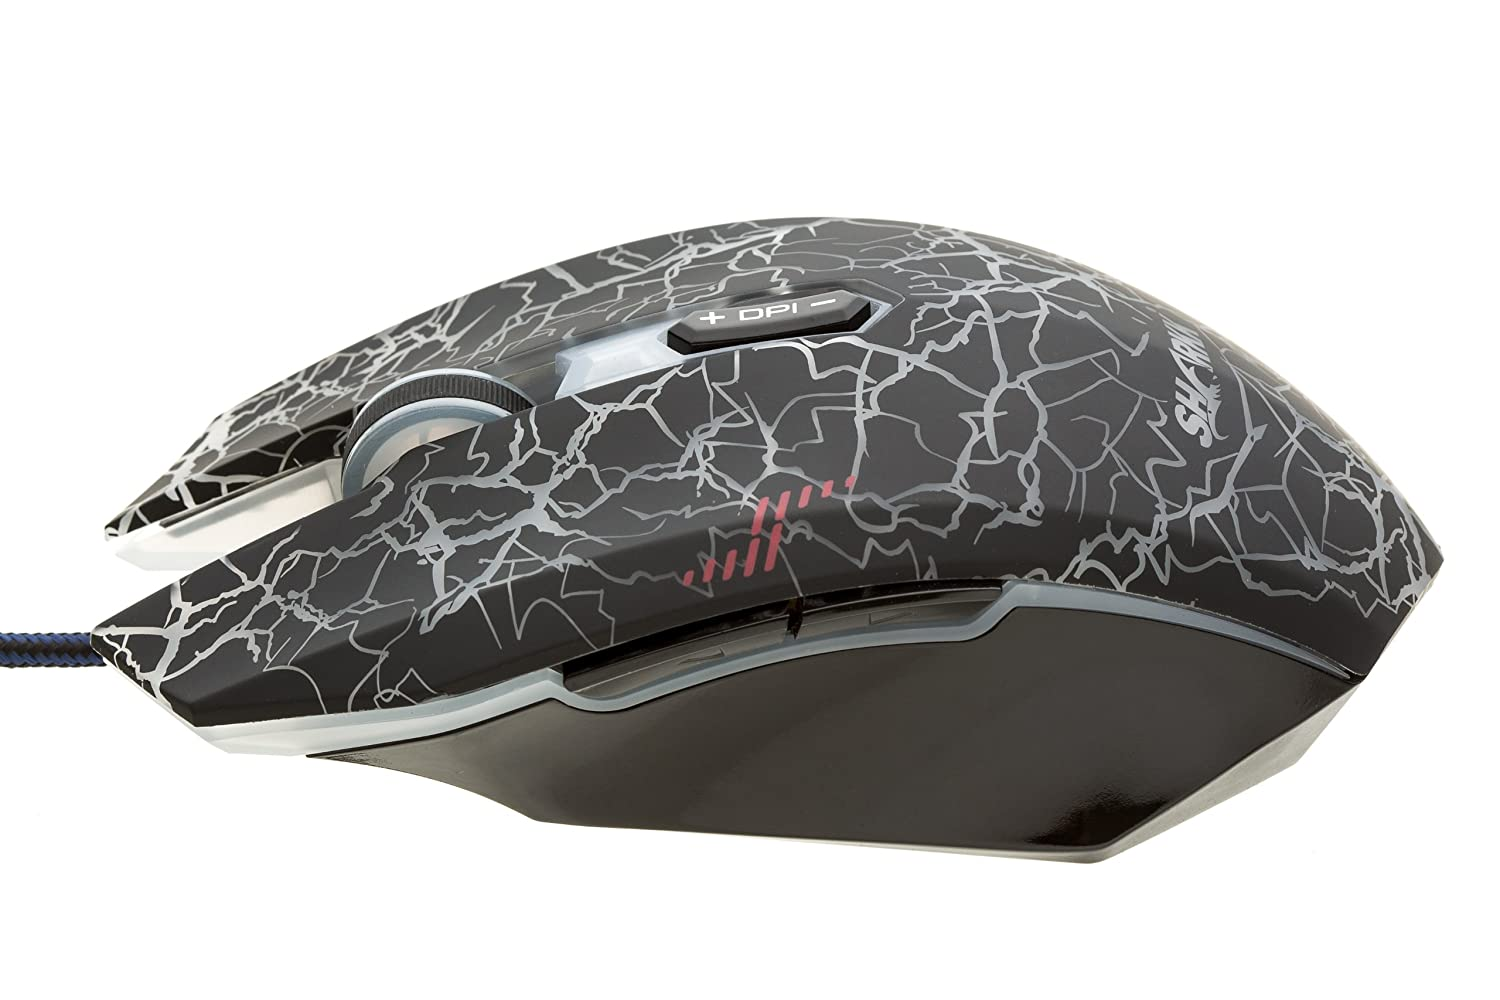 Sharkk Gaming Mouse 7 Programmable Buttons With 5 User Razer Naga Hex Mmo 2014 Hexagram V2 Free Pad Profiles Up To 2000 Dpi Omron Micro Switches Computers Accessories